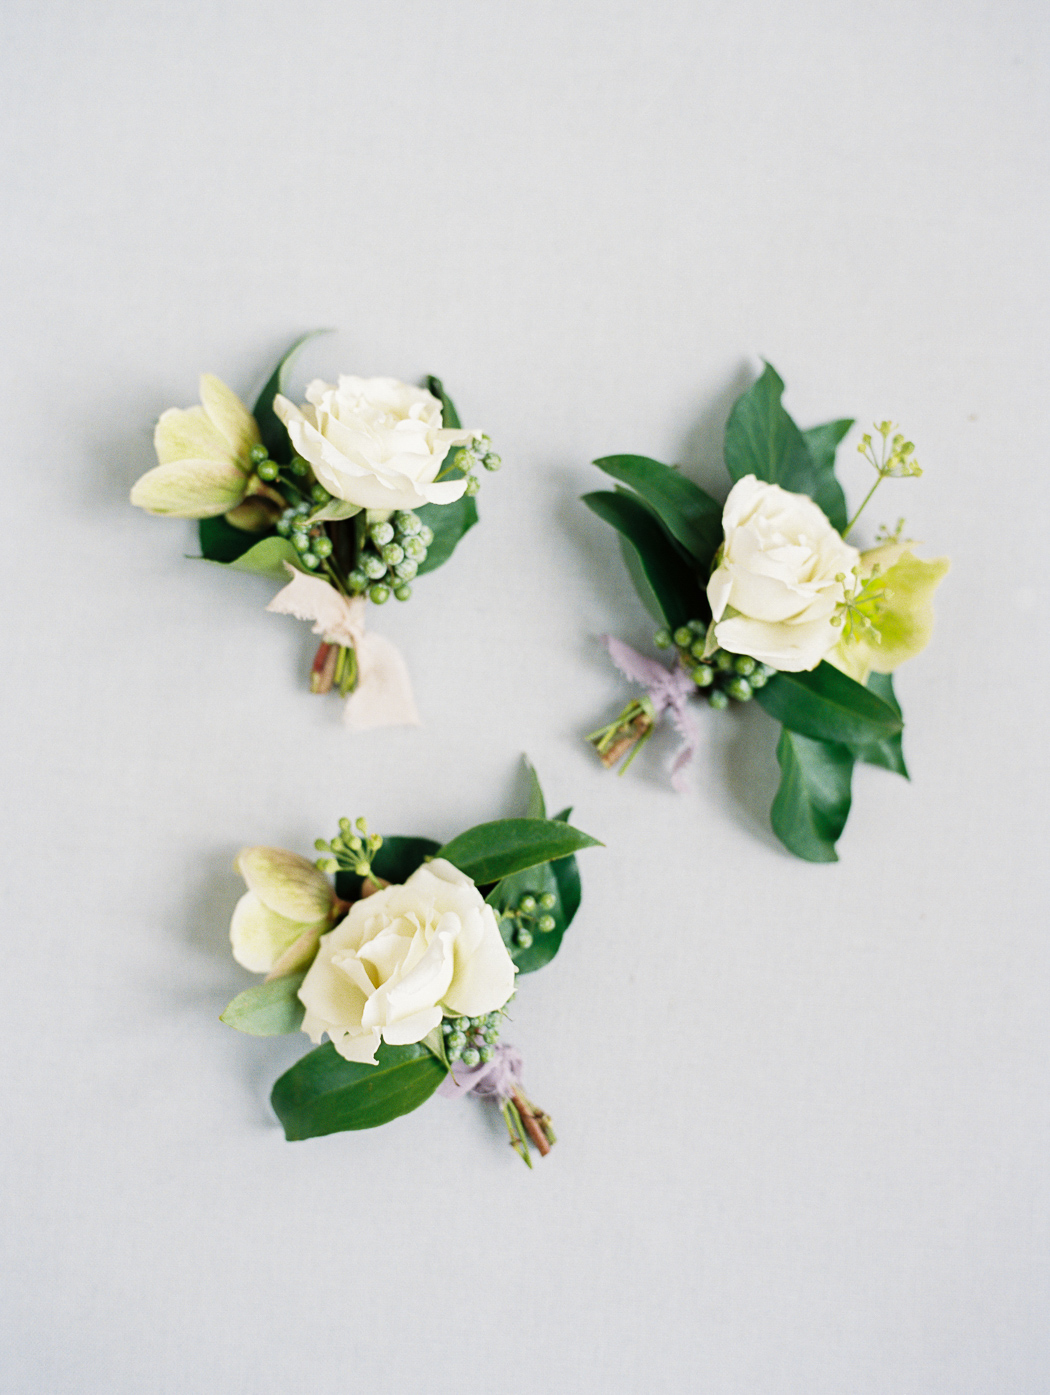 Amy-lauren-floral-design-wedding-boutonnieres